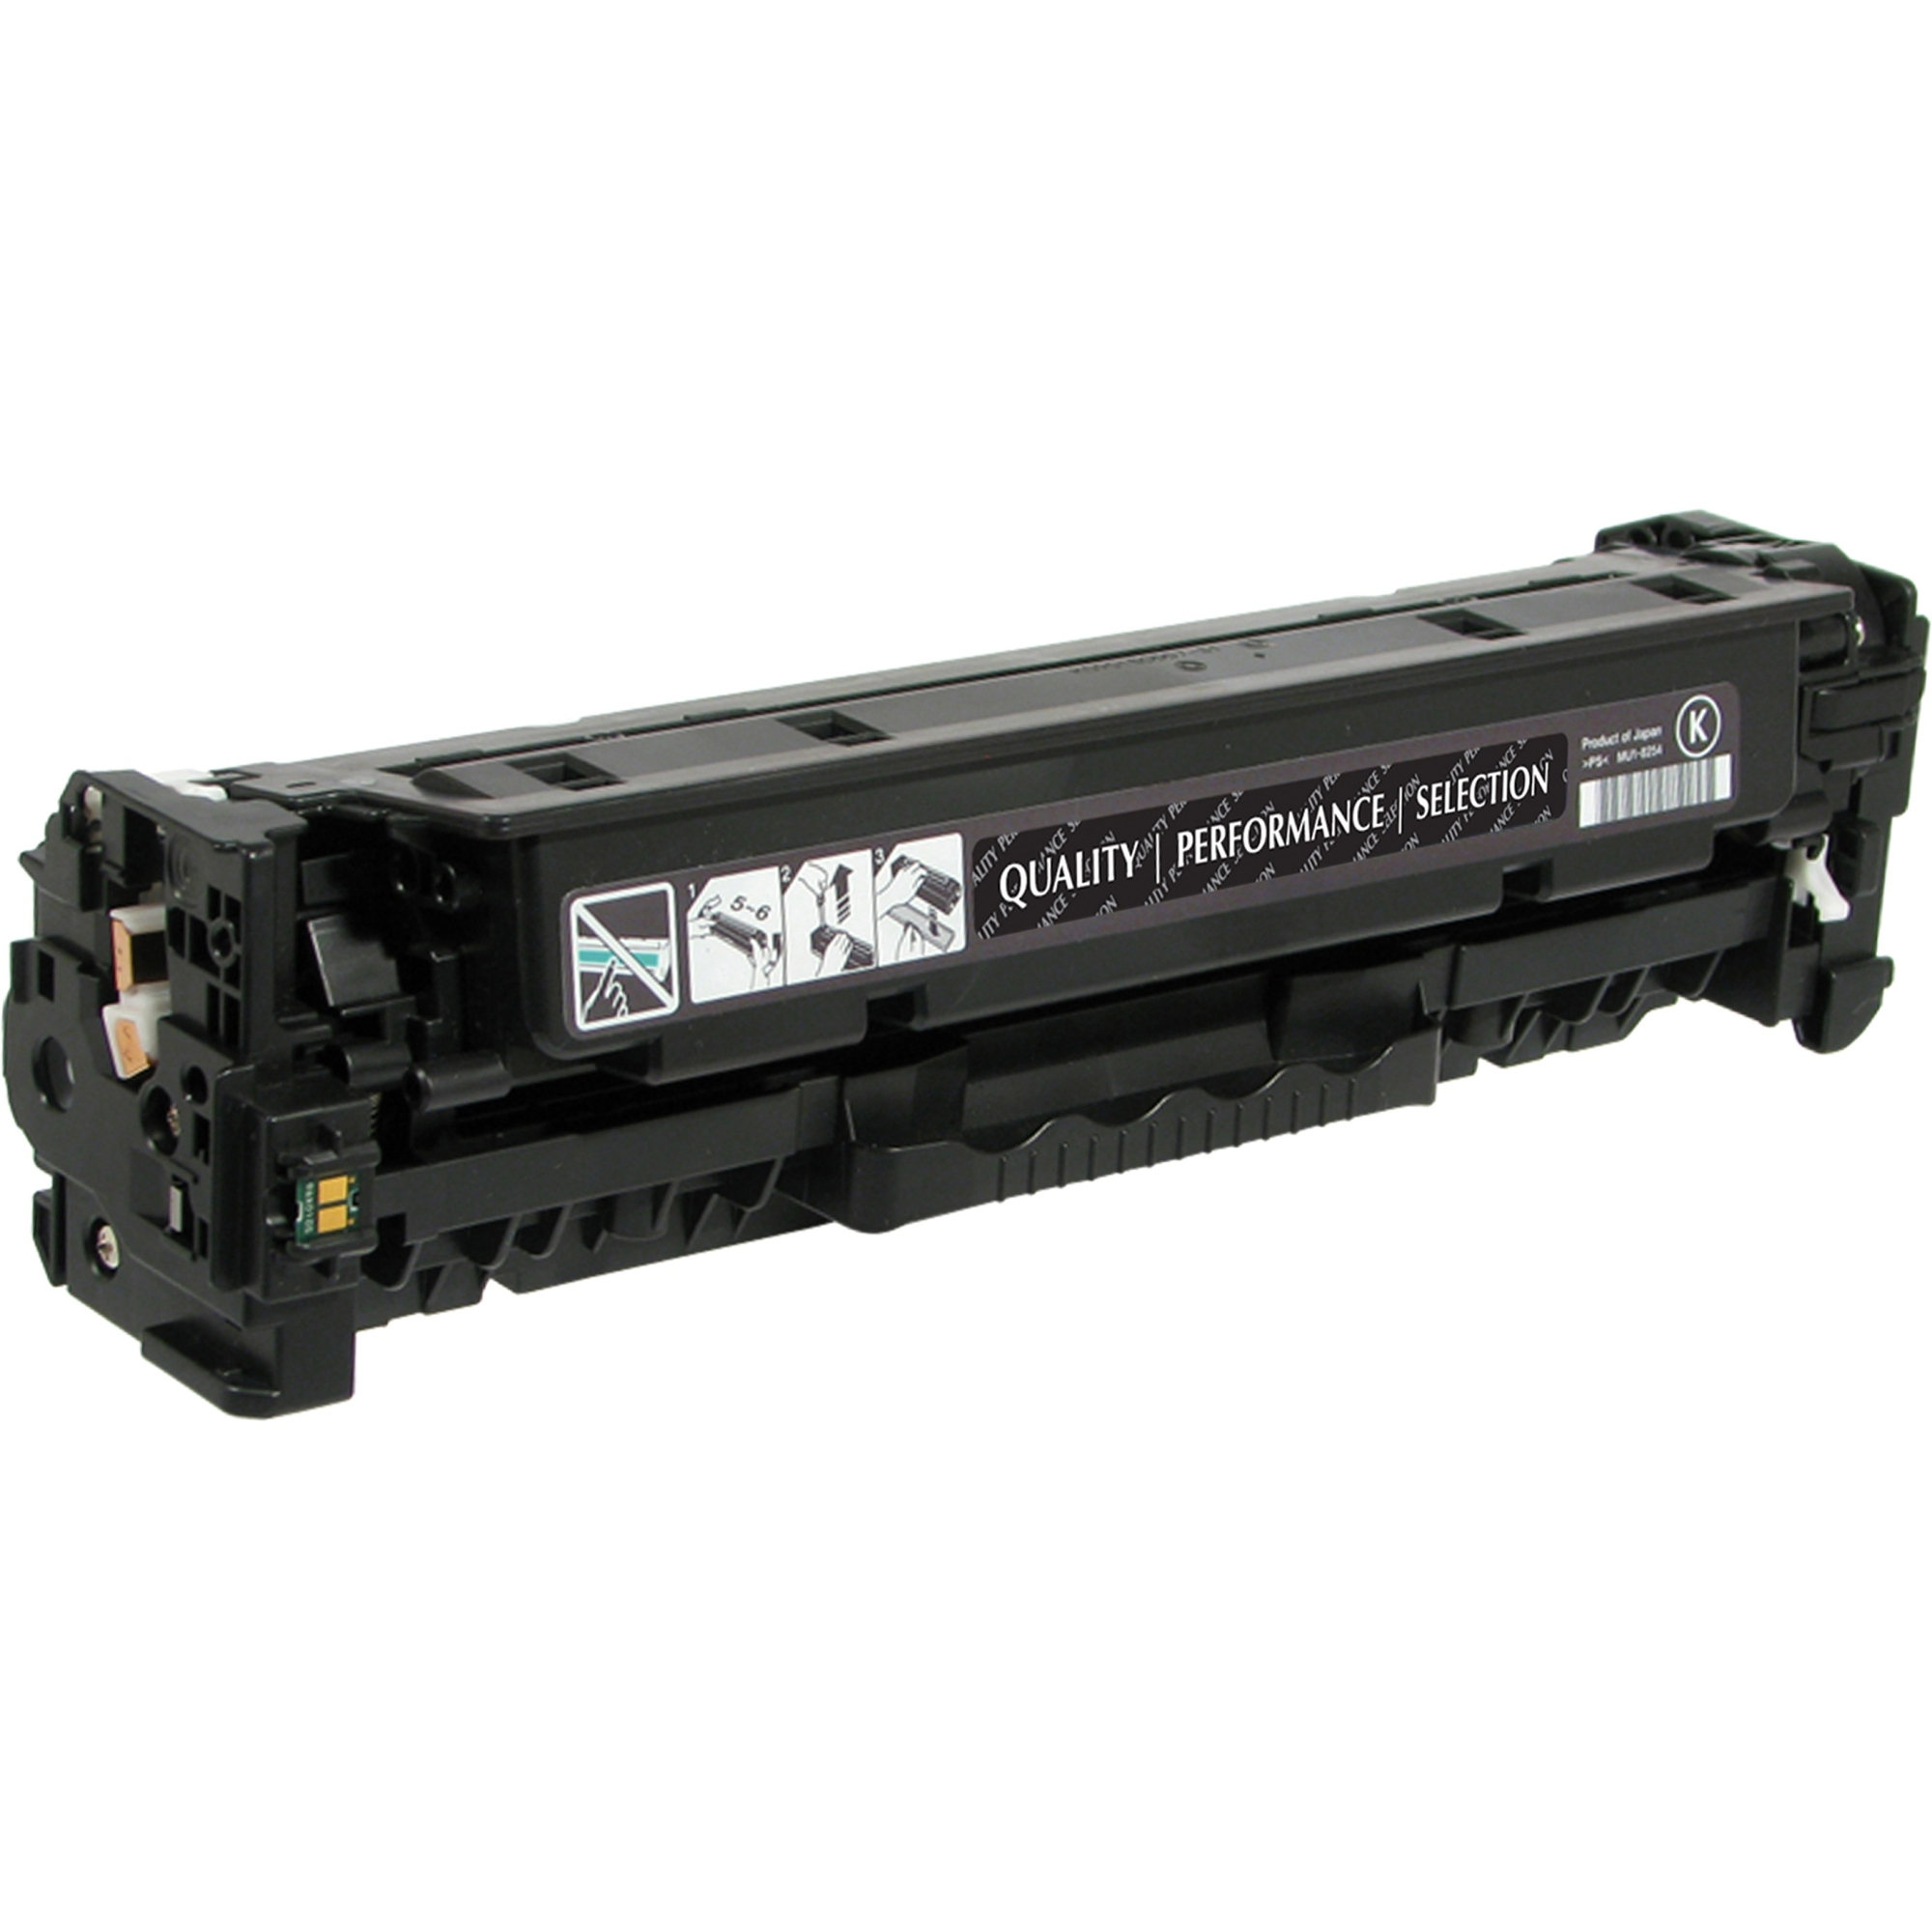 Toner Cartridge - Replacement for HP (CE410X) - Black - Laser - High Yield - 4000 Page